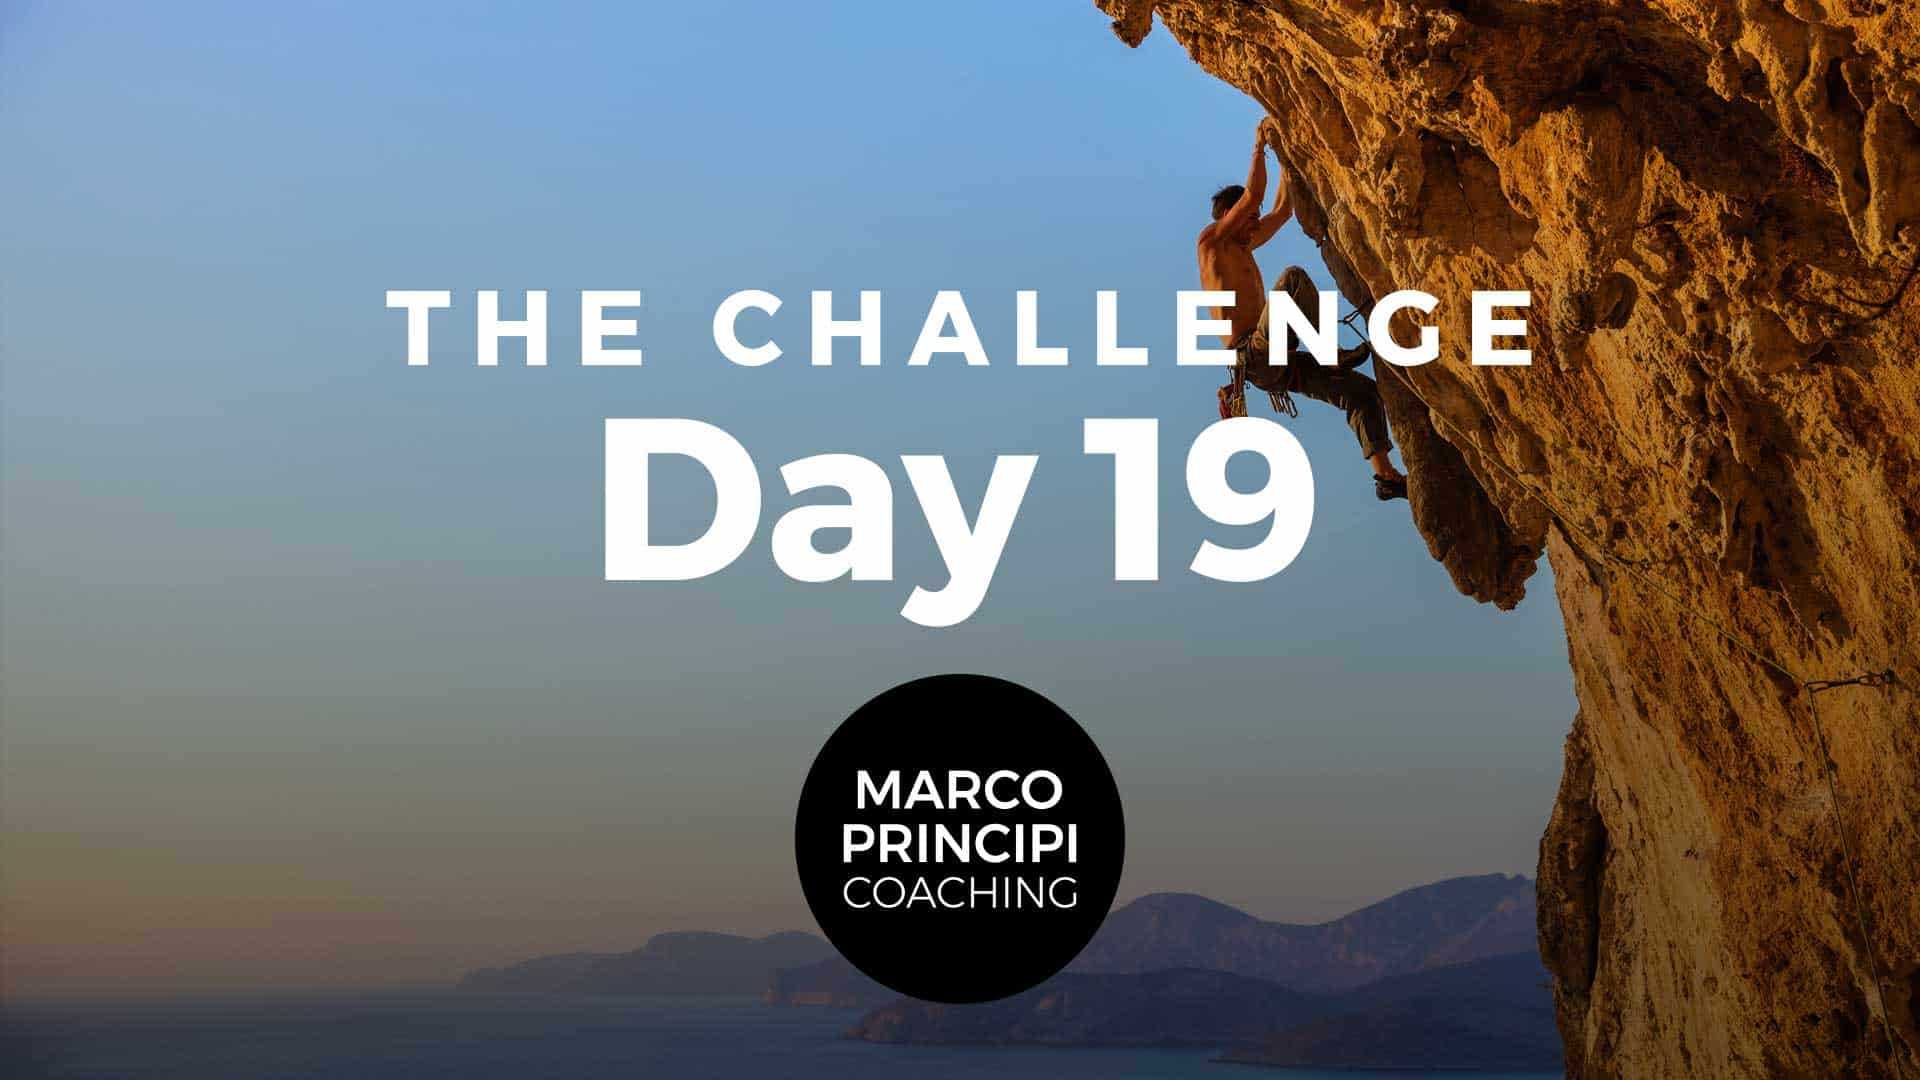 Marco Principi YT Cover The Challenge Day 019